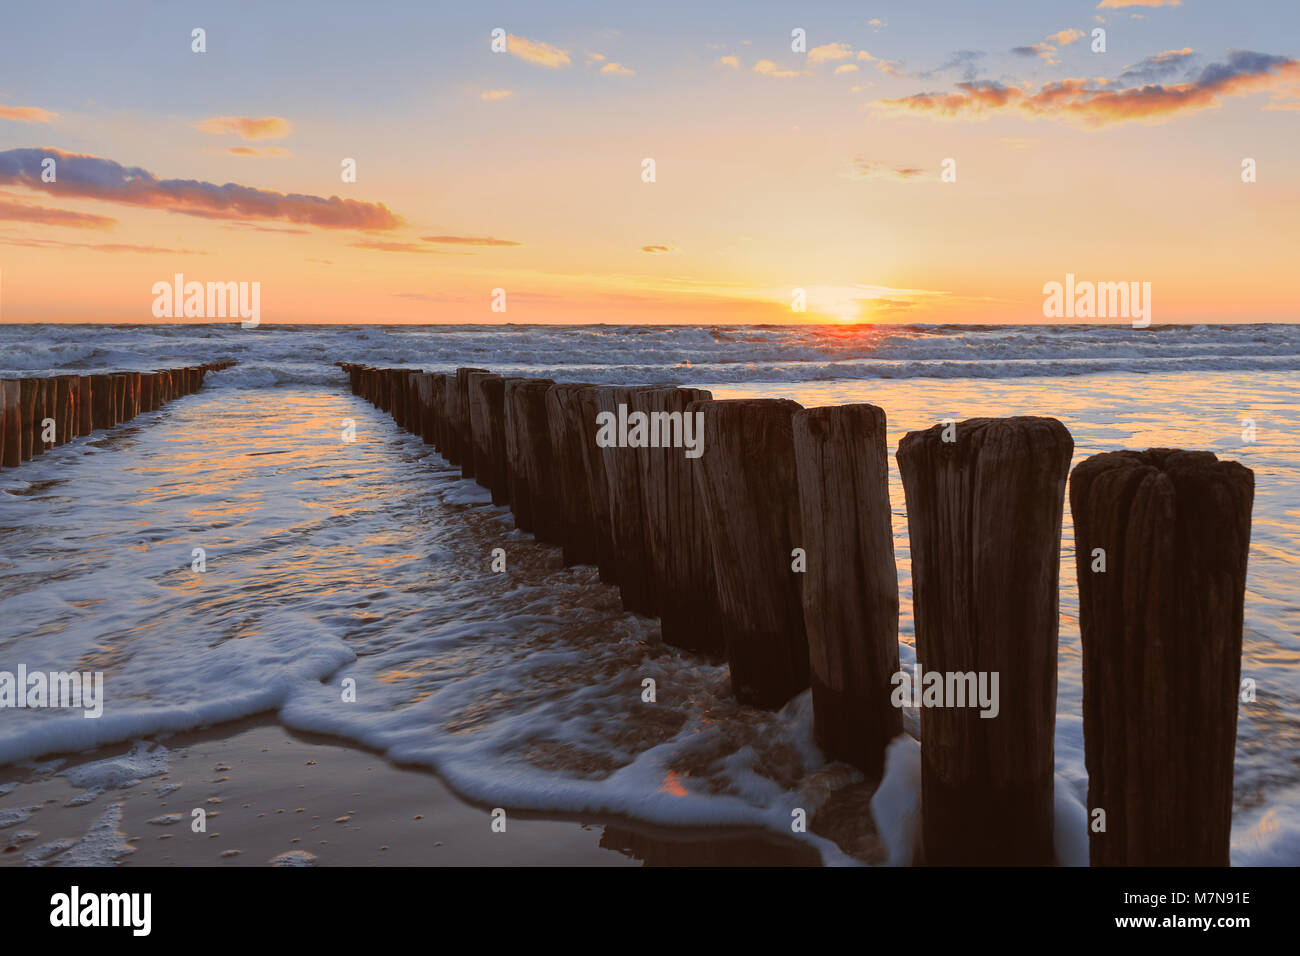 Sunset on the beach with wood groves in the foreground - Stock Image